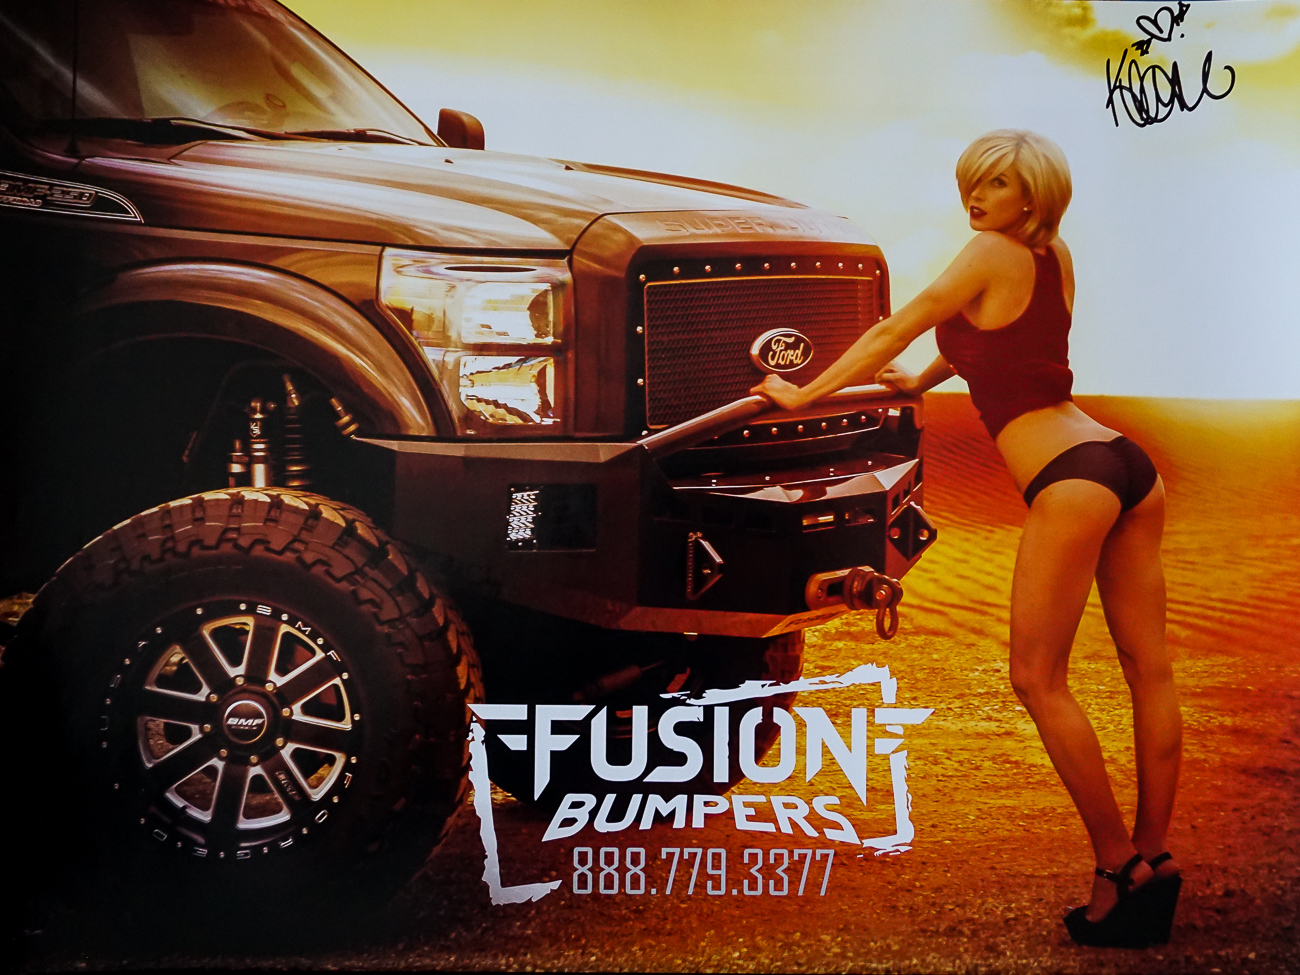 Autographed Poster Fusion Bumpers Model